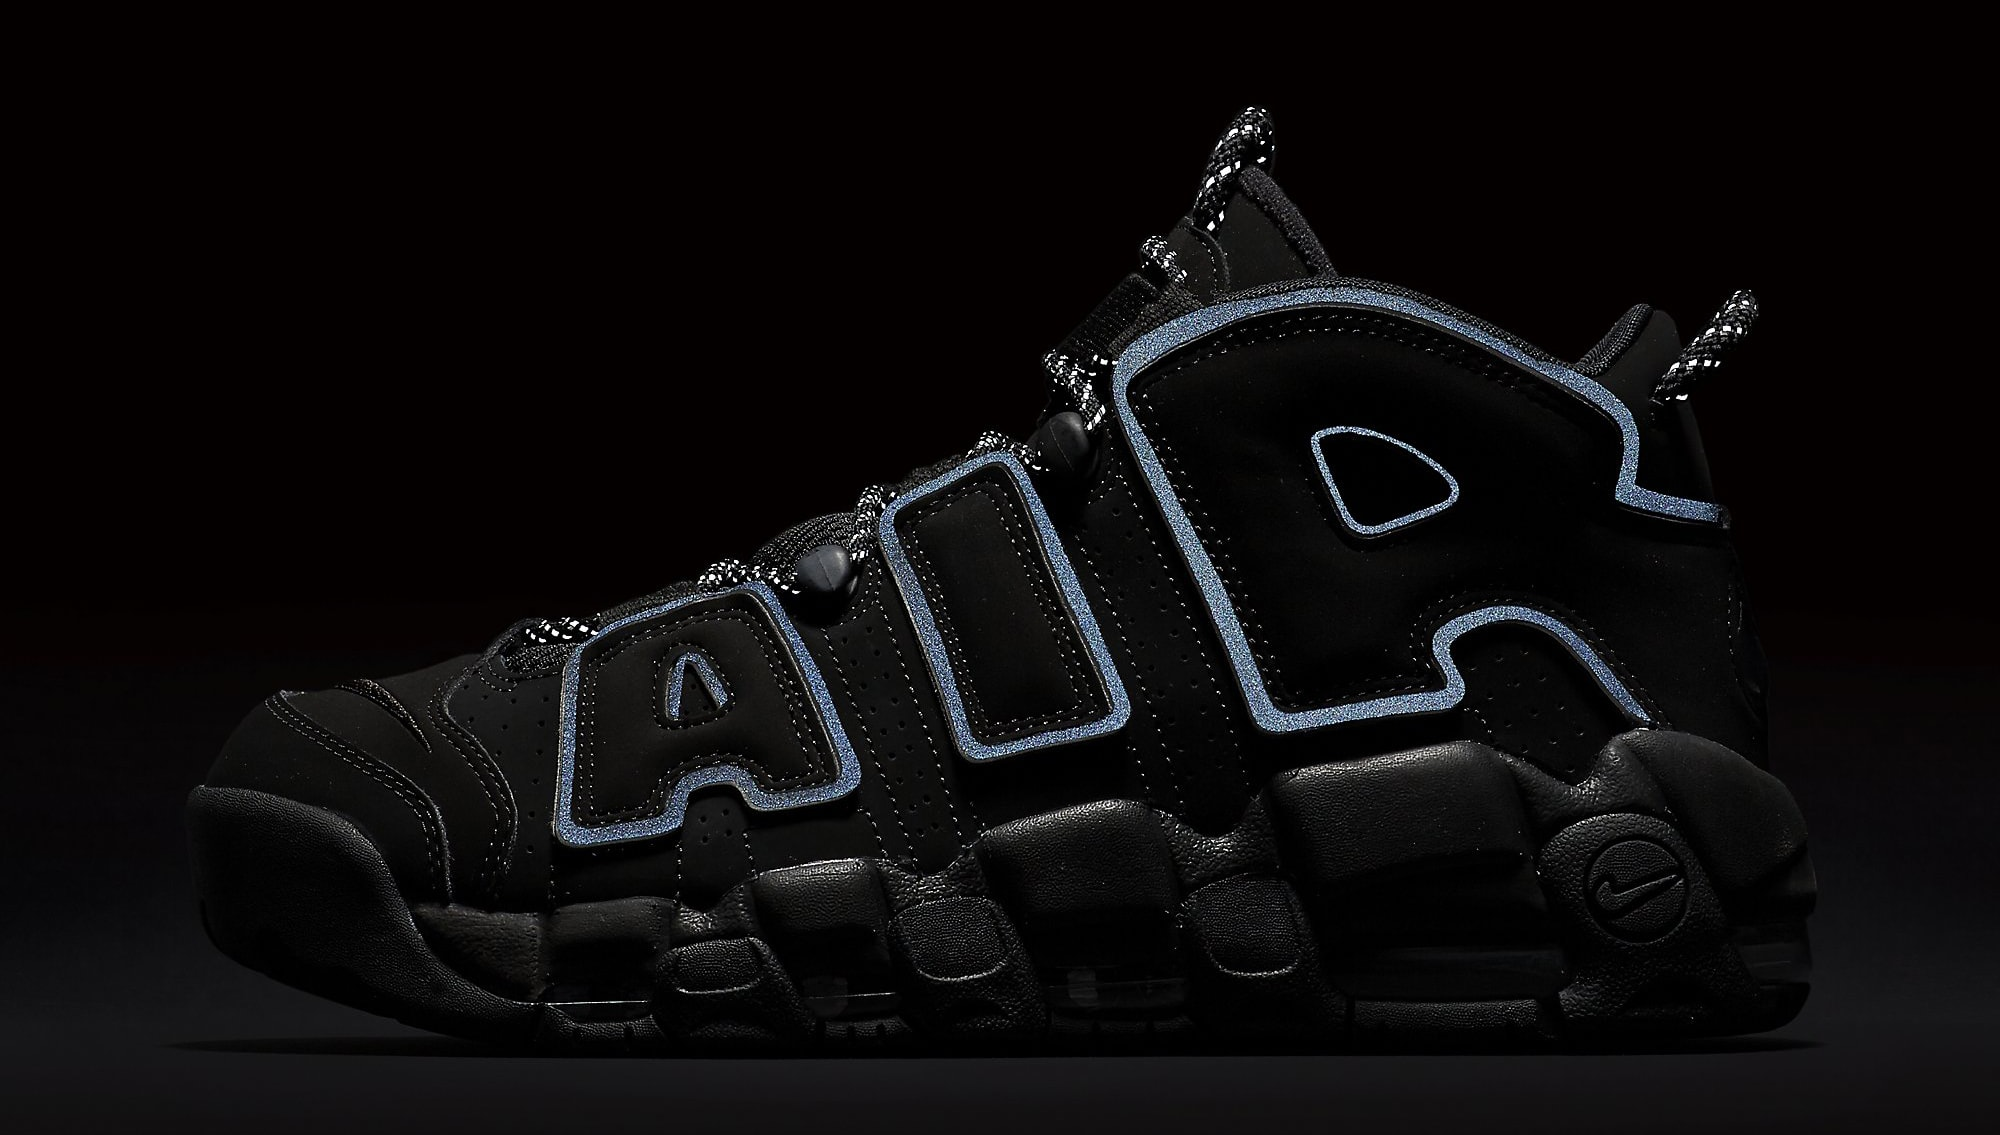 Nike Air More Uptempo Black Reflective 414962-004 3M